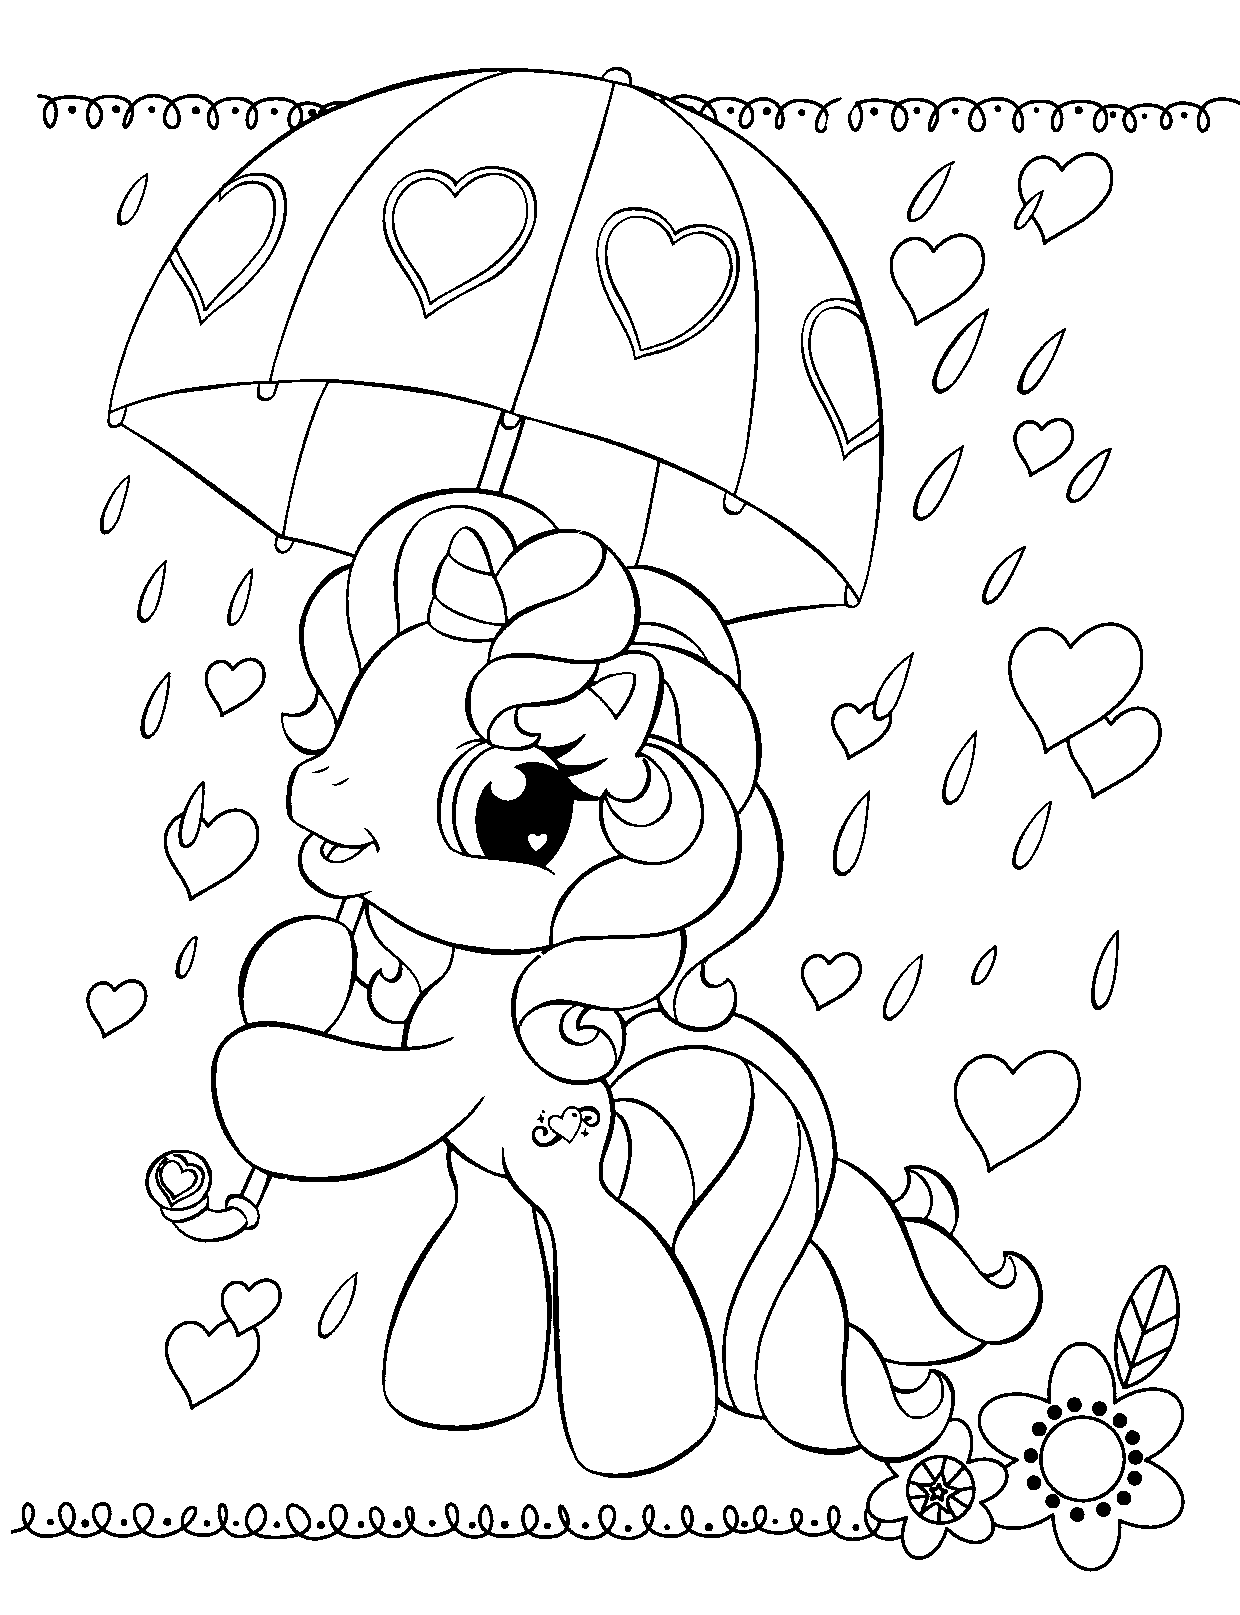 y little pony coloring pages - photo #19